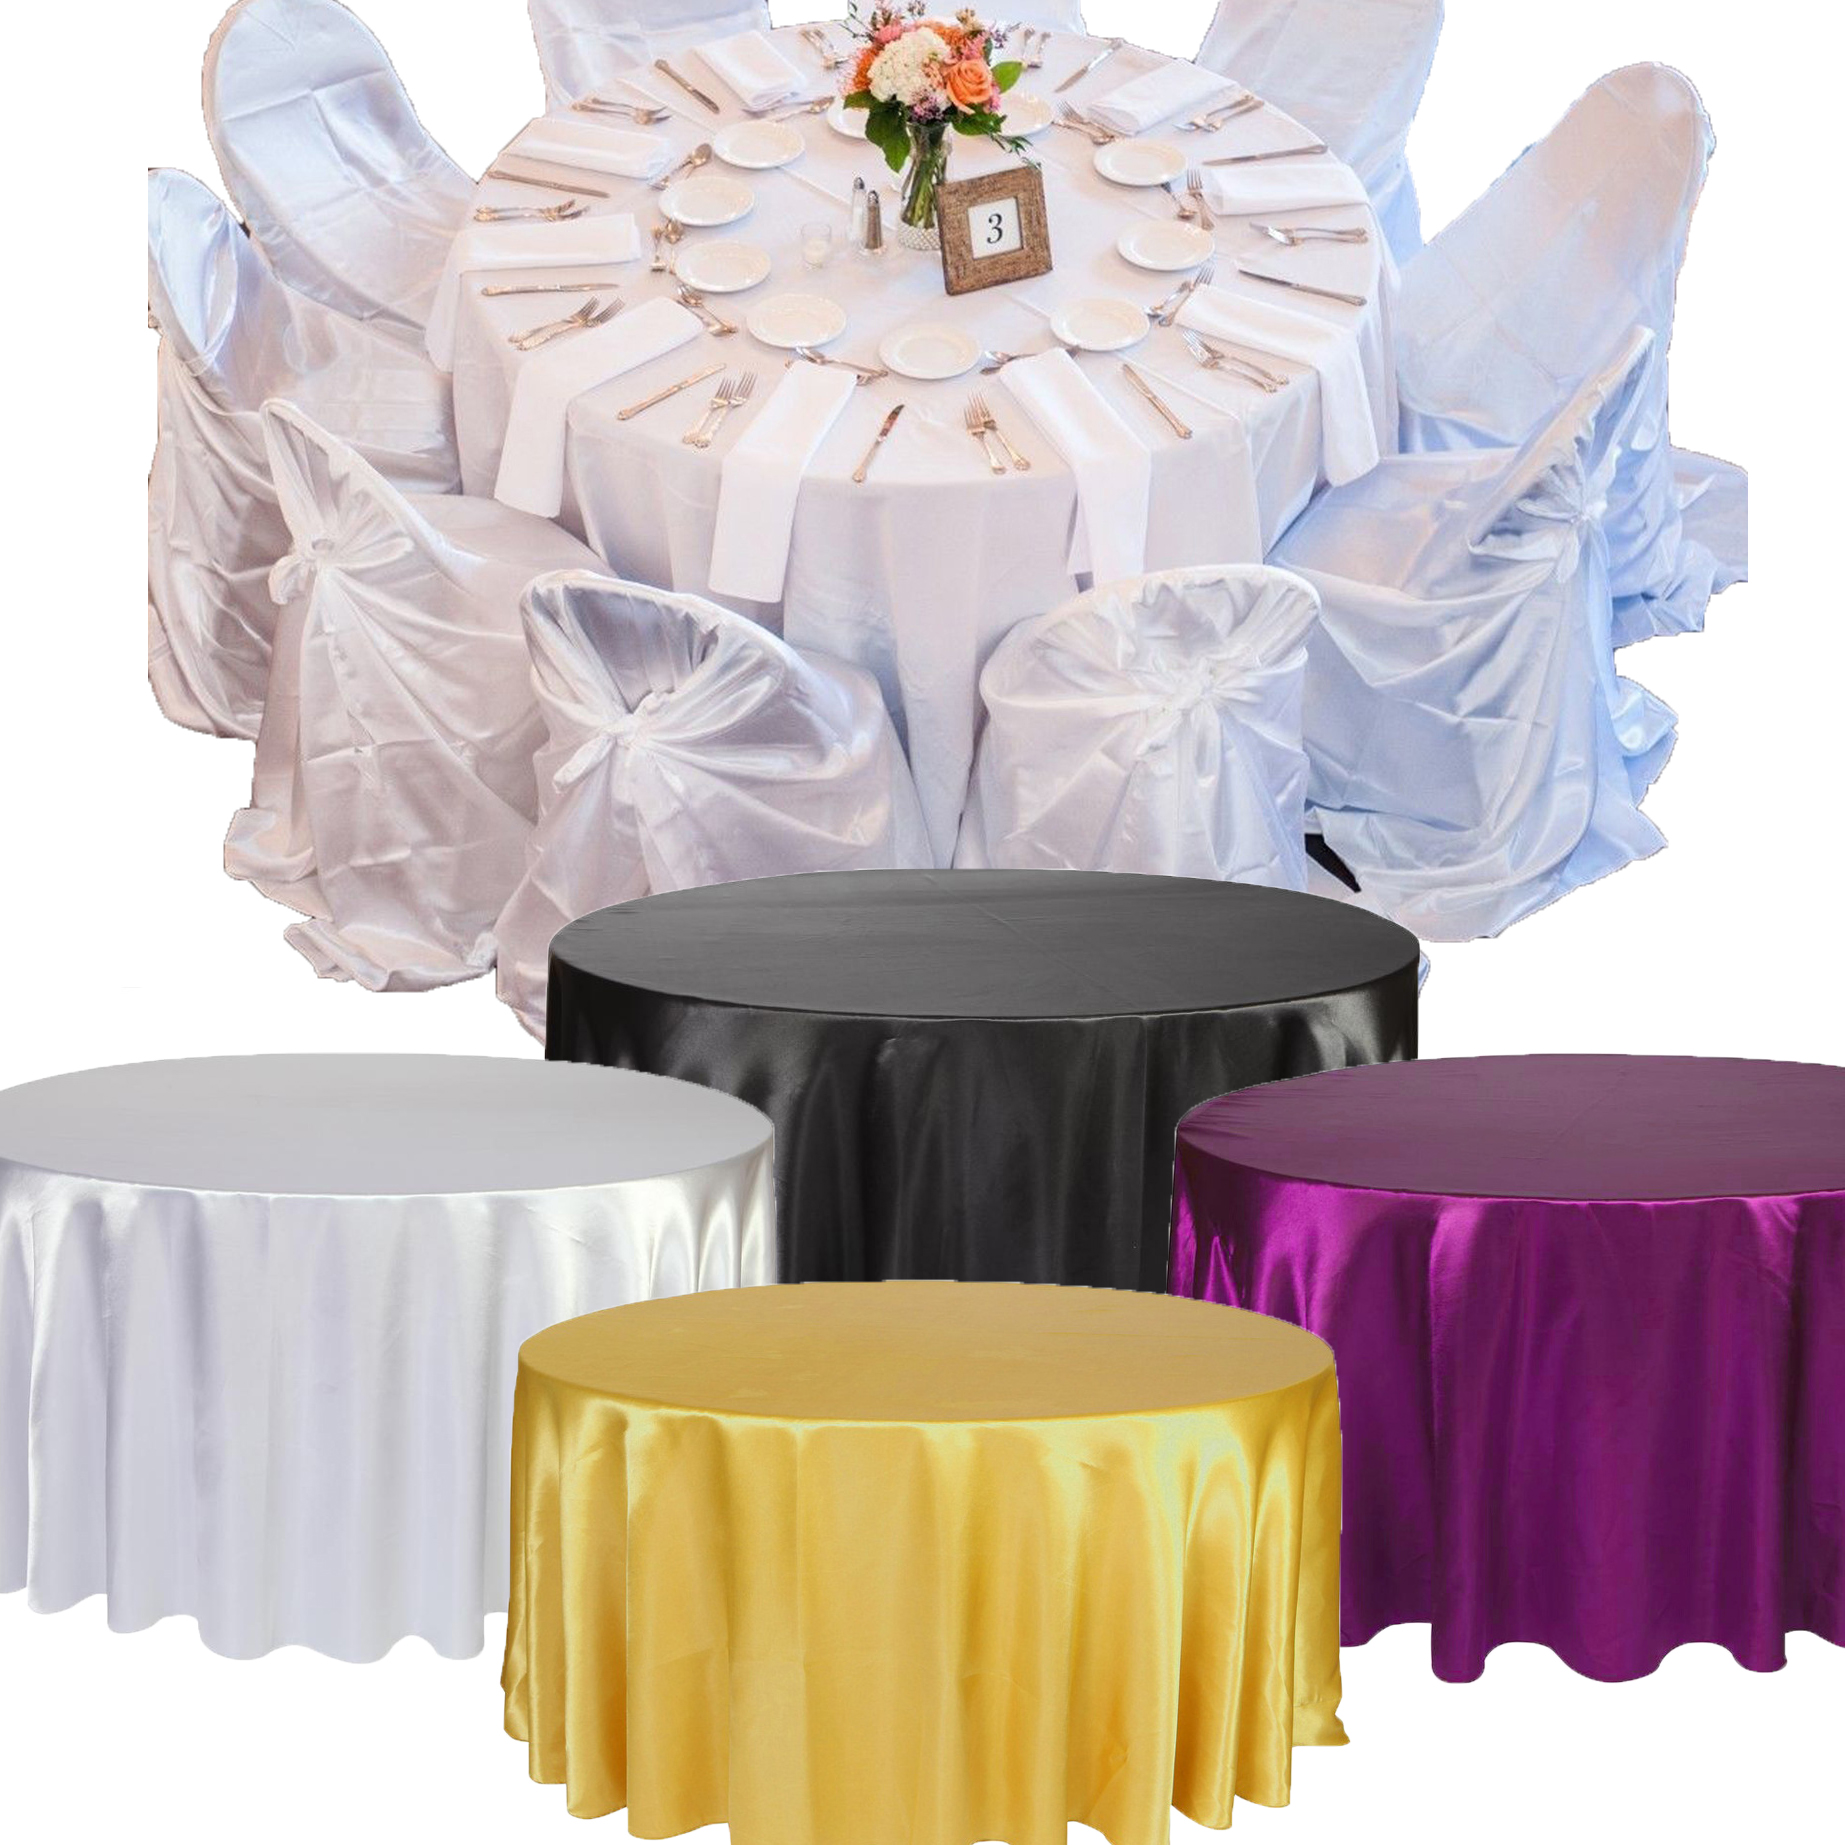 57'' 145cm Diameter Solid Round Table Cloth Home Decor Party Toys For Wedding Birthday Party 4 Colors Table Cover Cloth